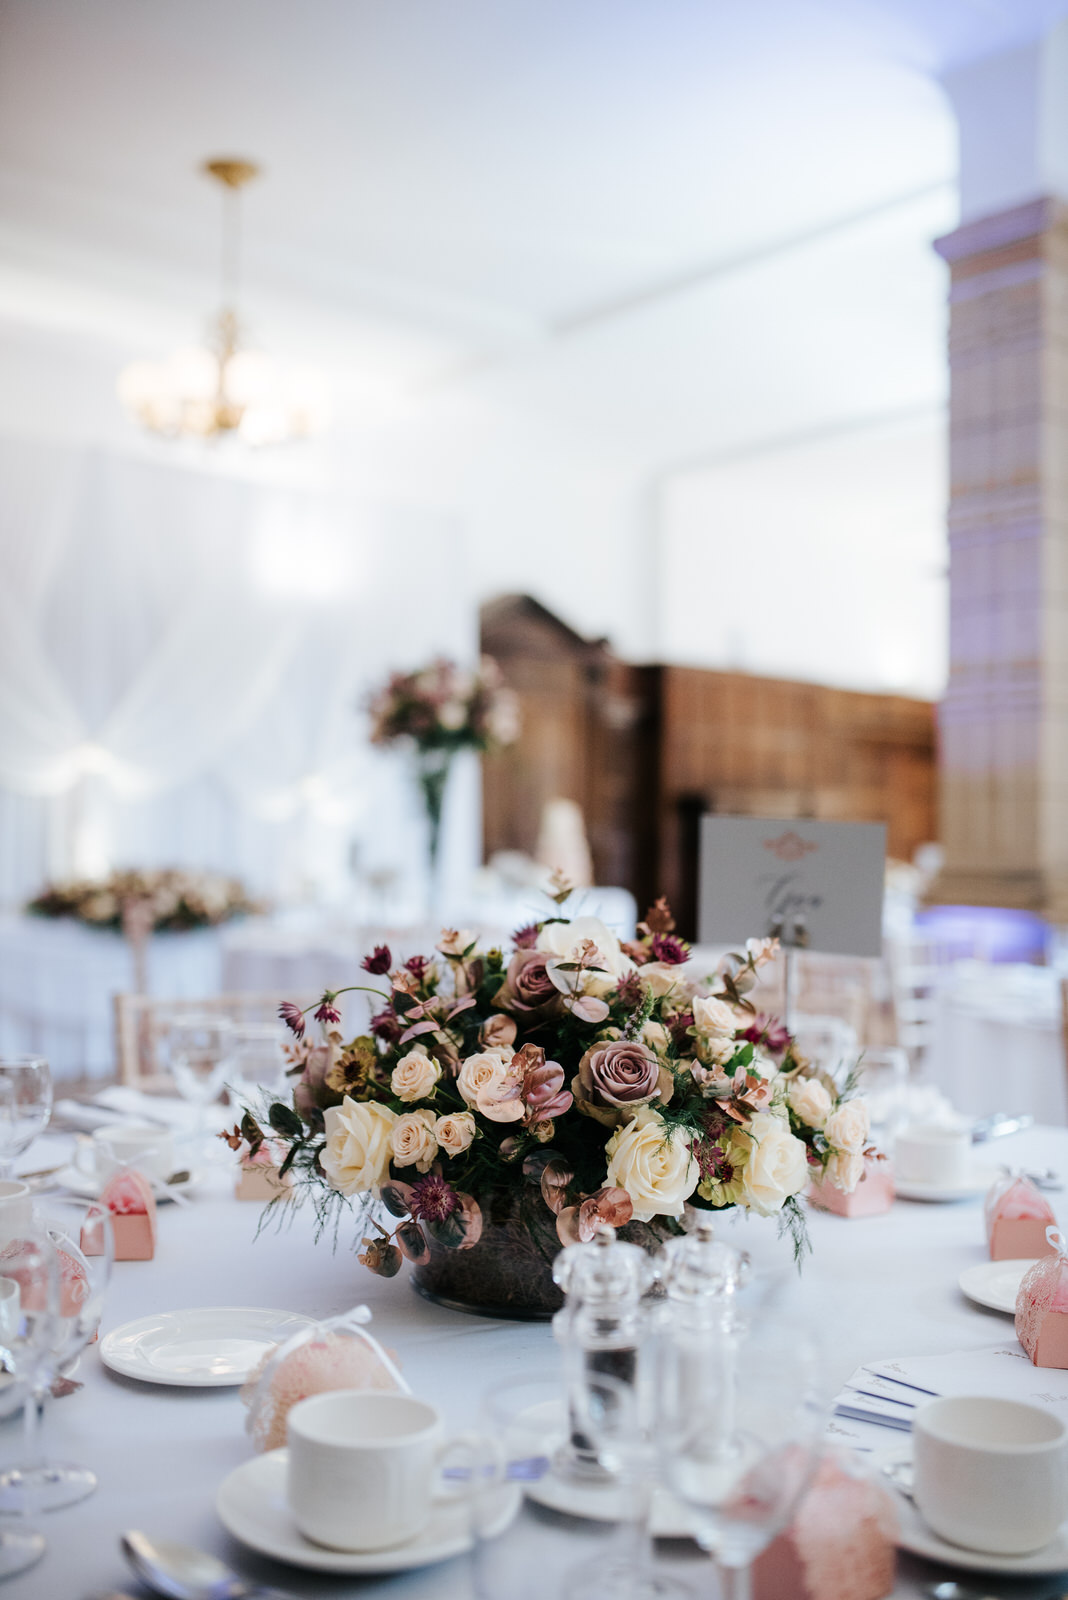 Close-up photo of rose flower centrepiece on tables inside Woldi